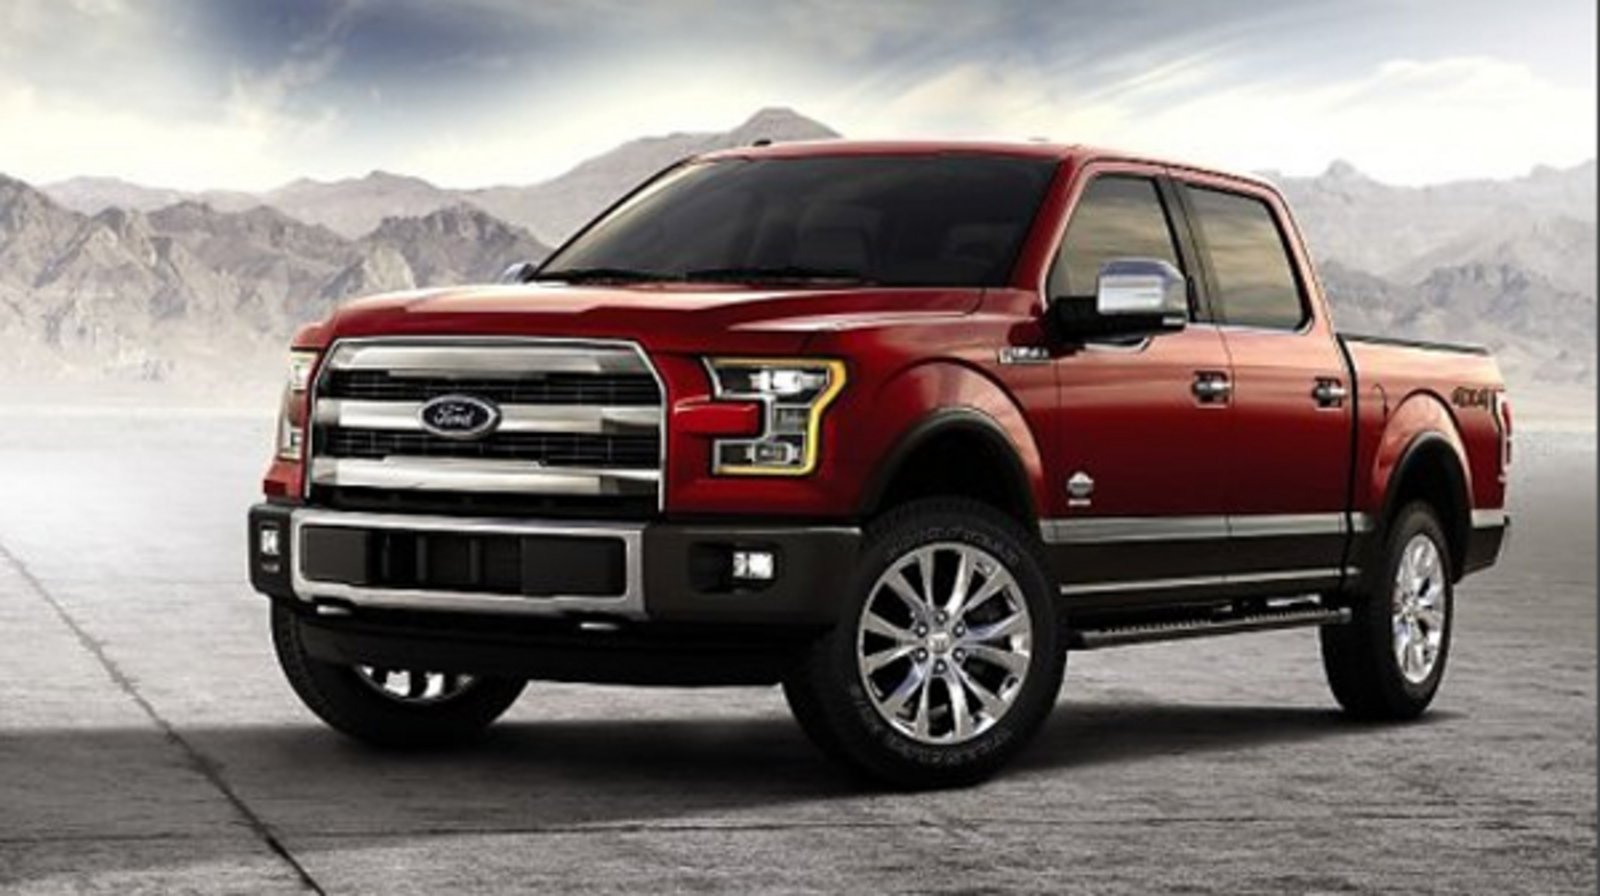 Ford Explorer Pickup >> In Depth: 2017 Ford F-150 Buyer's Guide Guide - Top Speed